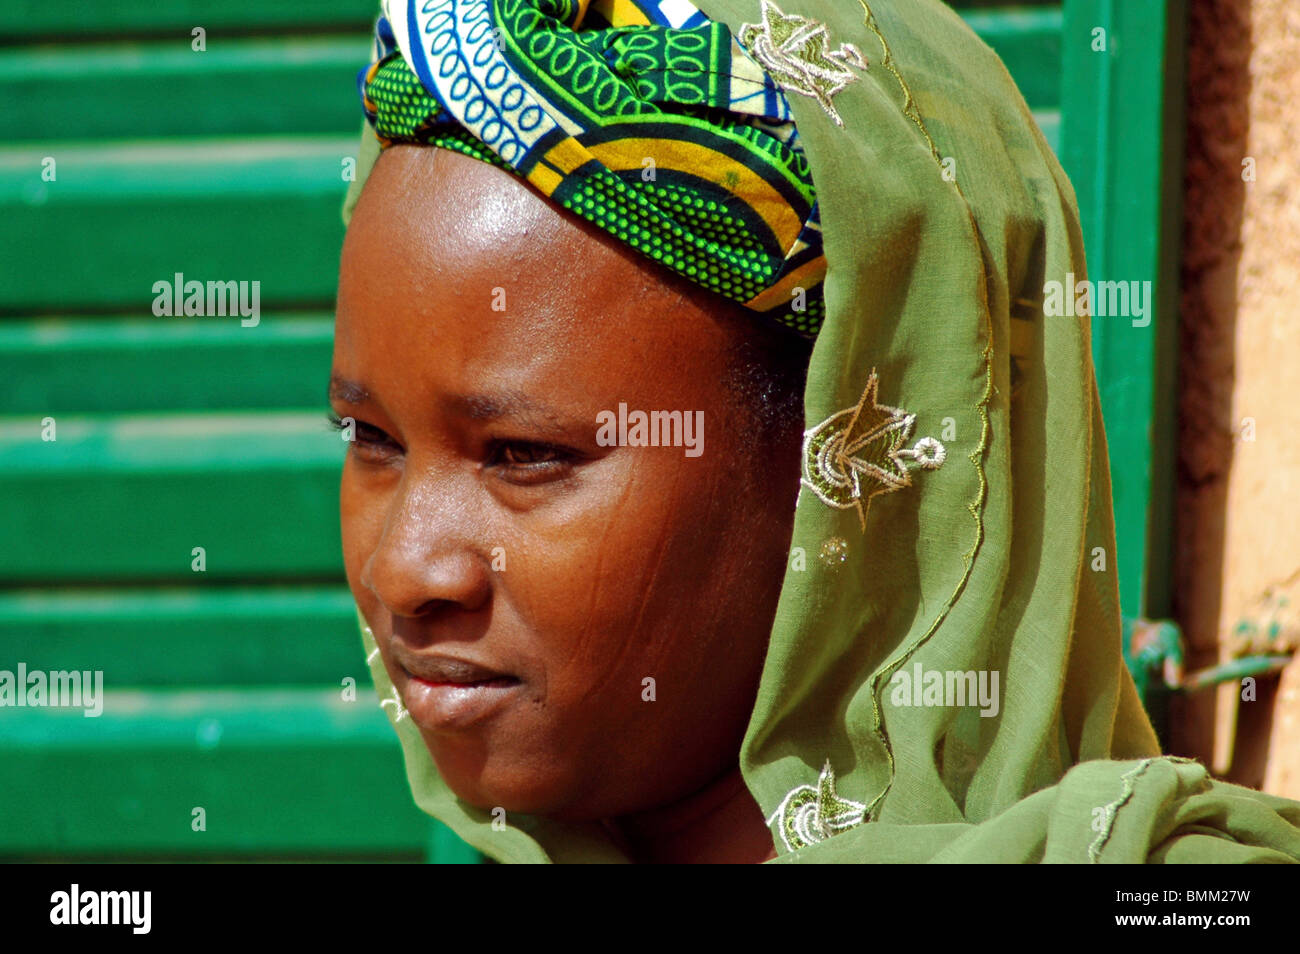 Niger, Niamey, Portrait of an african and muslim woman wearing a green scarf and standing next to a green window - Stock Image